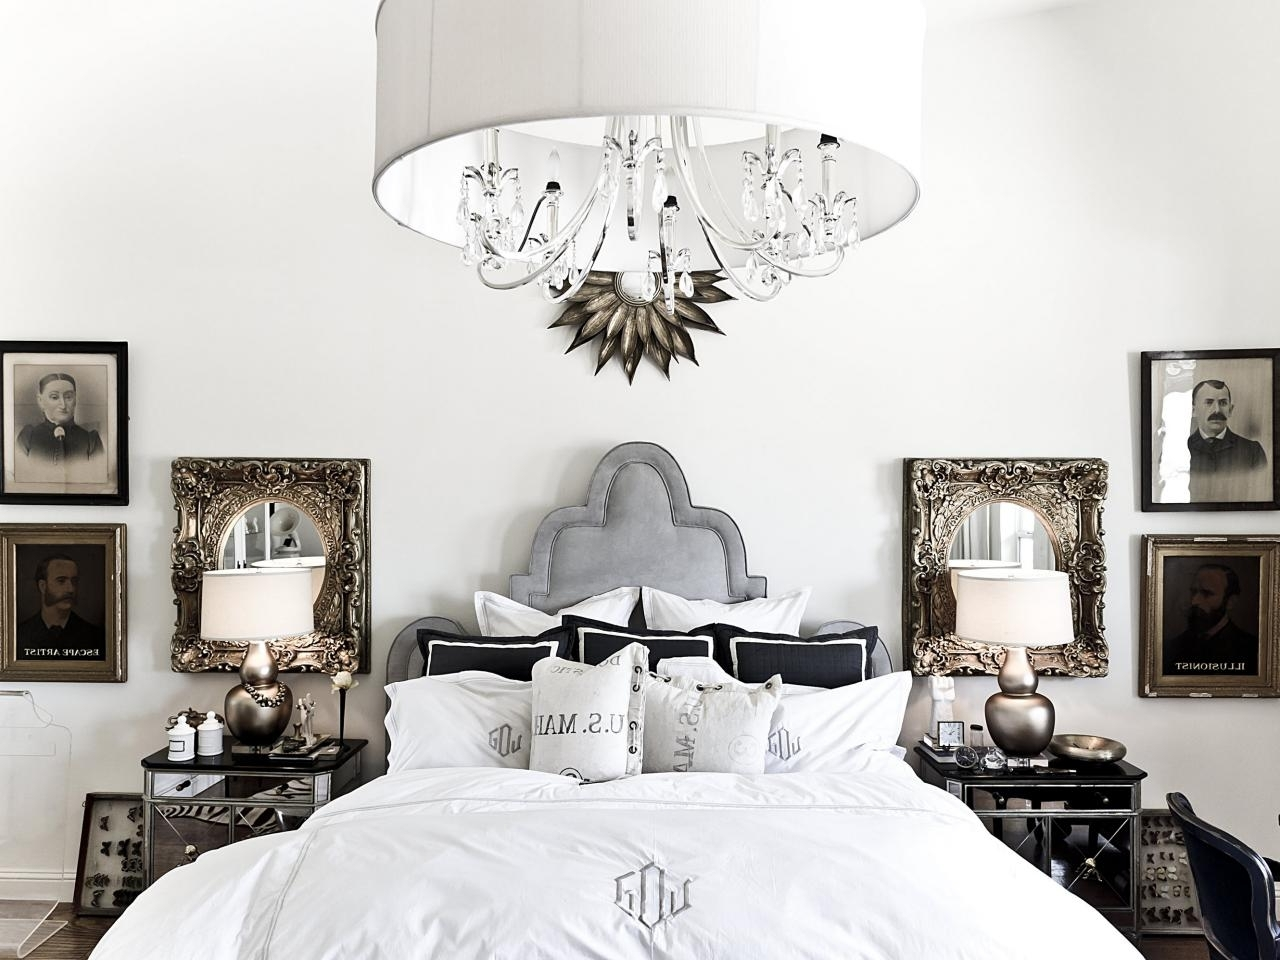 Current Chandelier Night Stand Lamps Throughout Bedroom Chandelier Lighting (View 10 of 20)